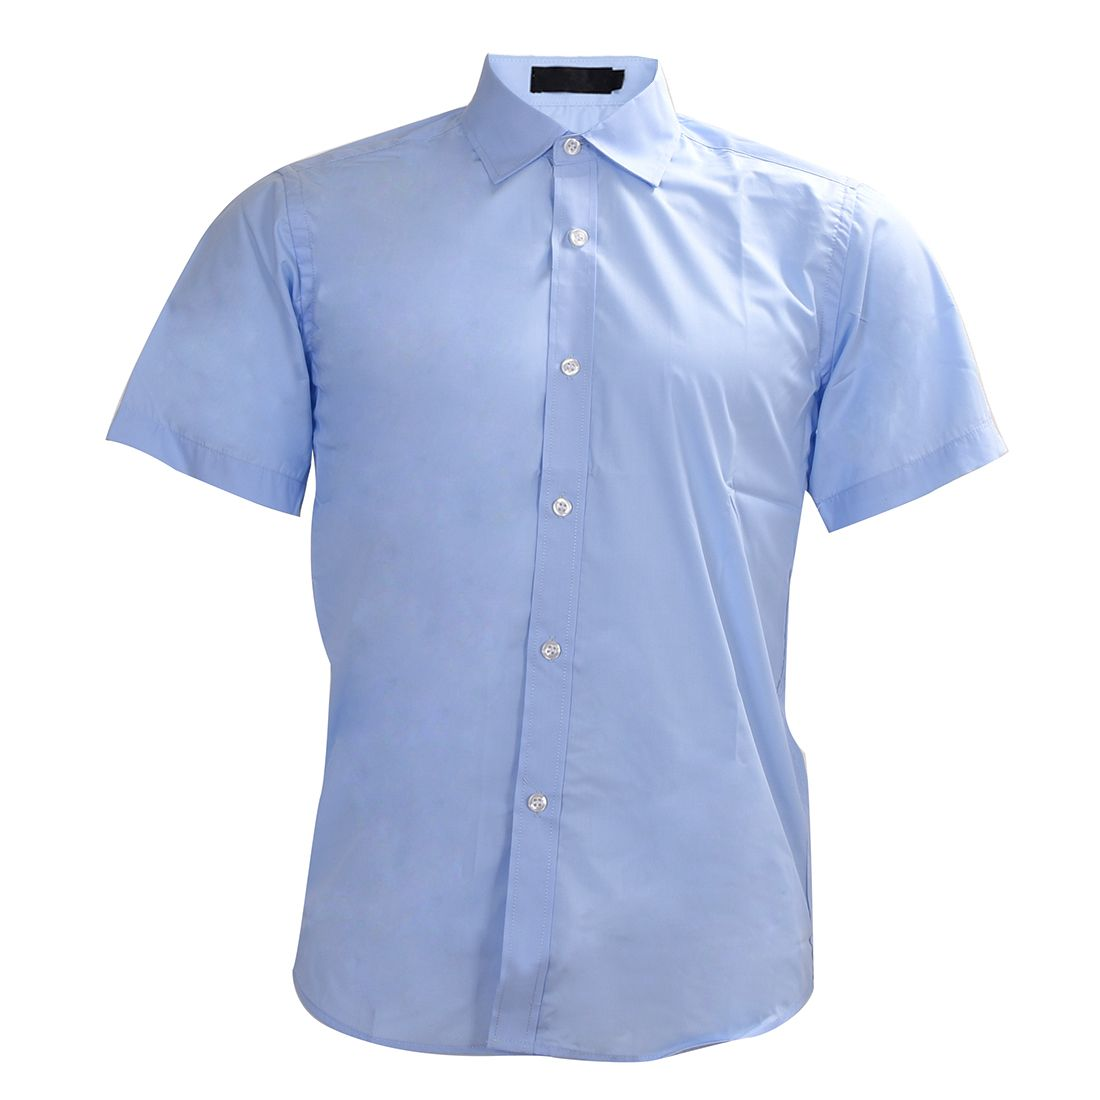 New fashion men shirt kurzarm männer shirts sommer shirts himmelblau M